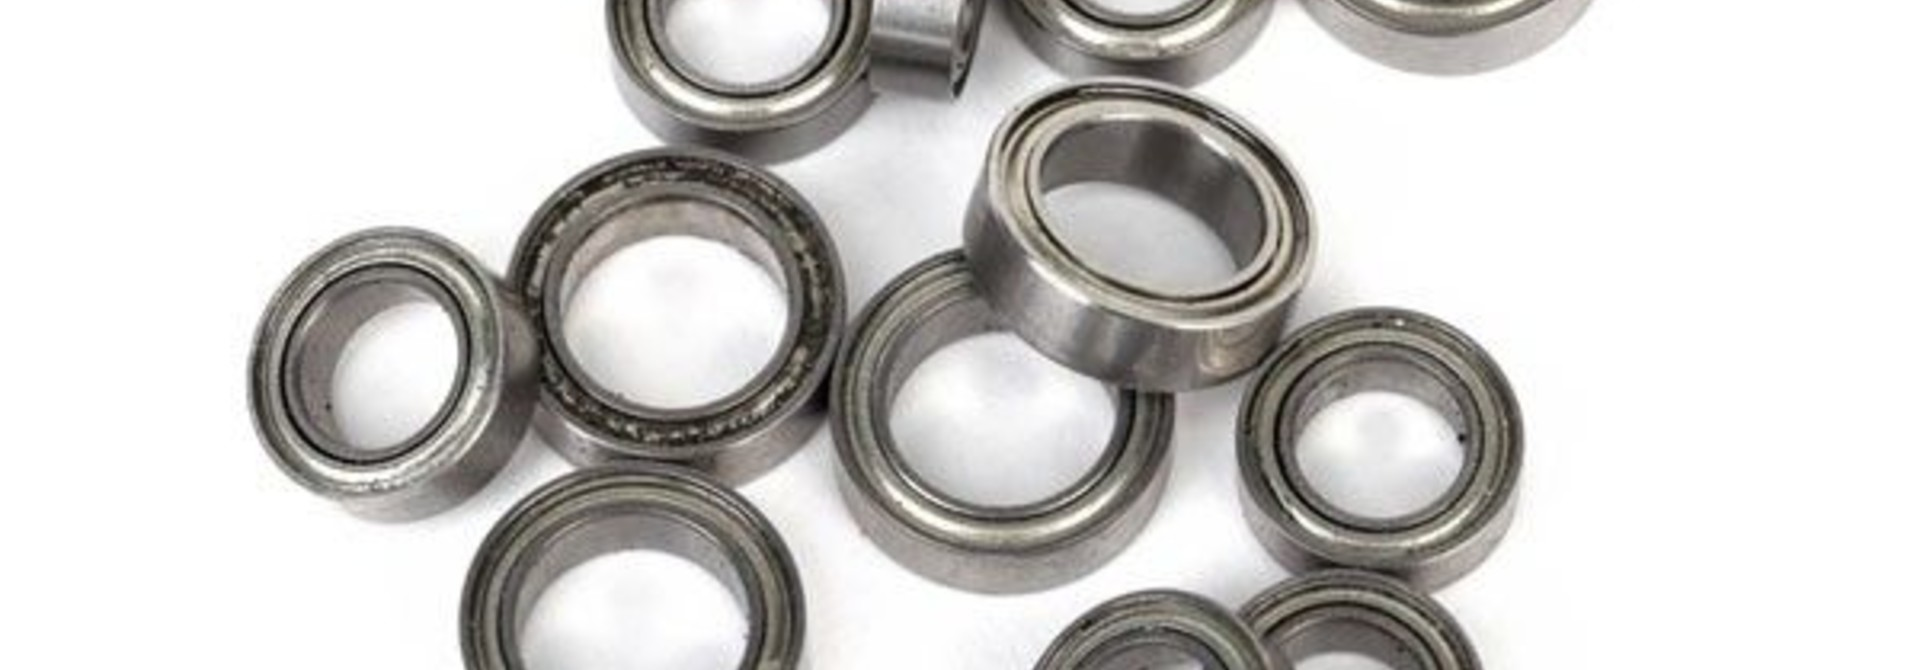 Bearings Set, Complete Bearings: 4X8M, TRX7541X